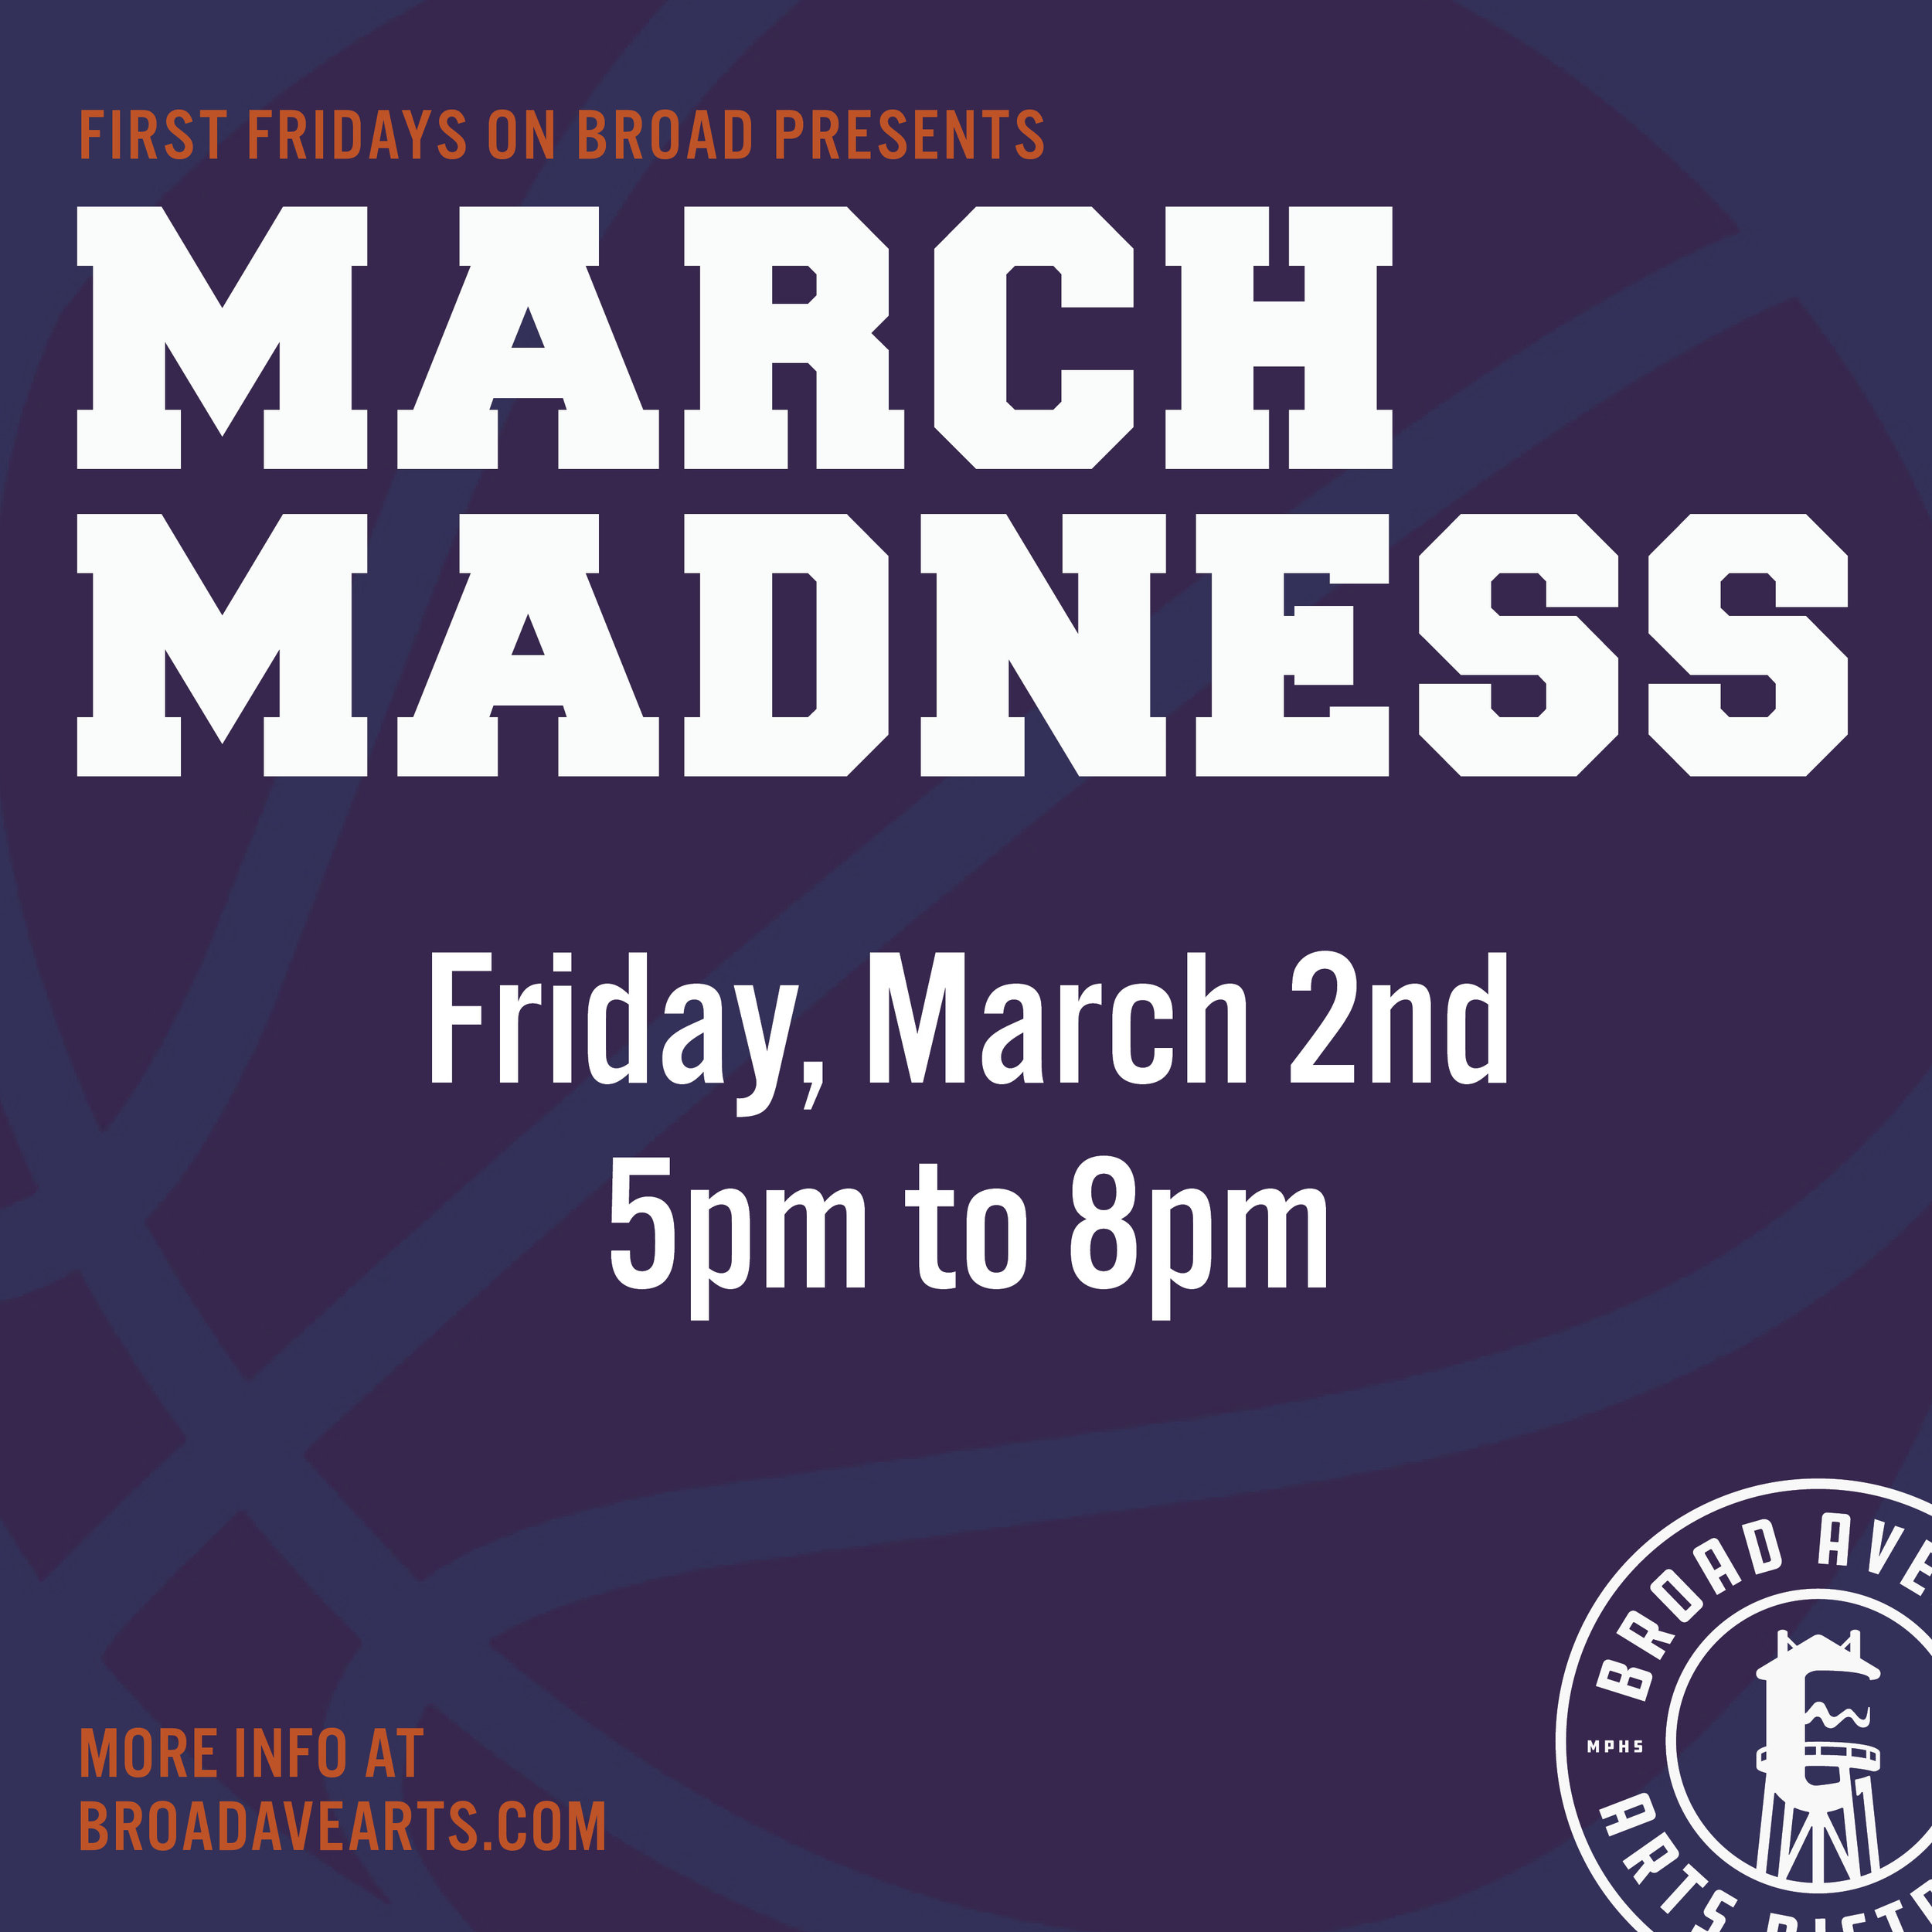 First Fridays on Broad presents March Madness  Stop by each of the participating shops to play games and win discounts and prizes!!  We are also celebrating the grand opening of Hollywood Feed's new store!  Participating shops (more to come)  Wiseacre Brewing Company   Falling Into Place   Merchants on Broad   T Clifton Art   Bingham & Broad   Pedaltown Bicycle Company   City & State